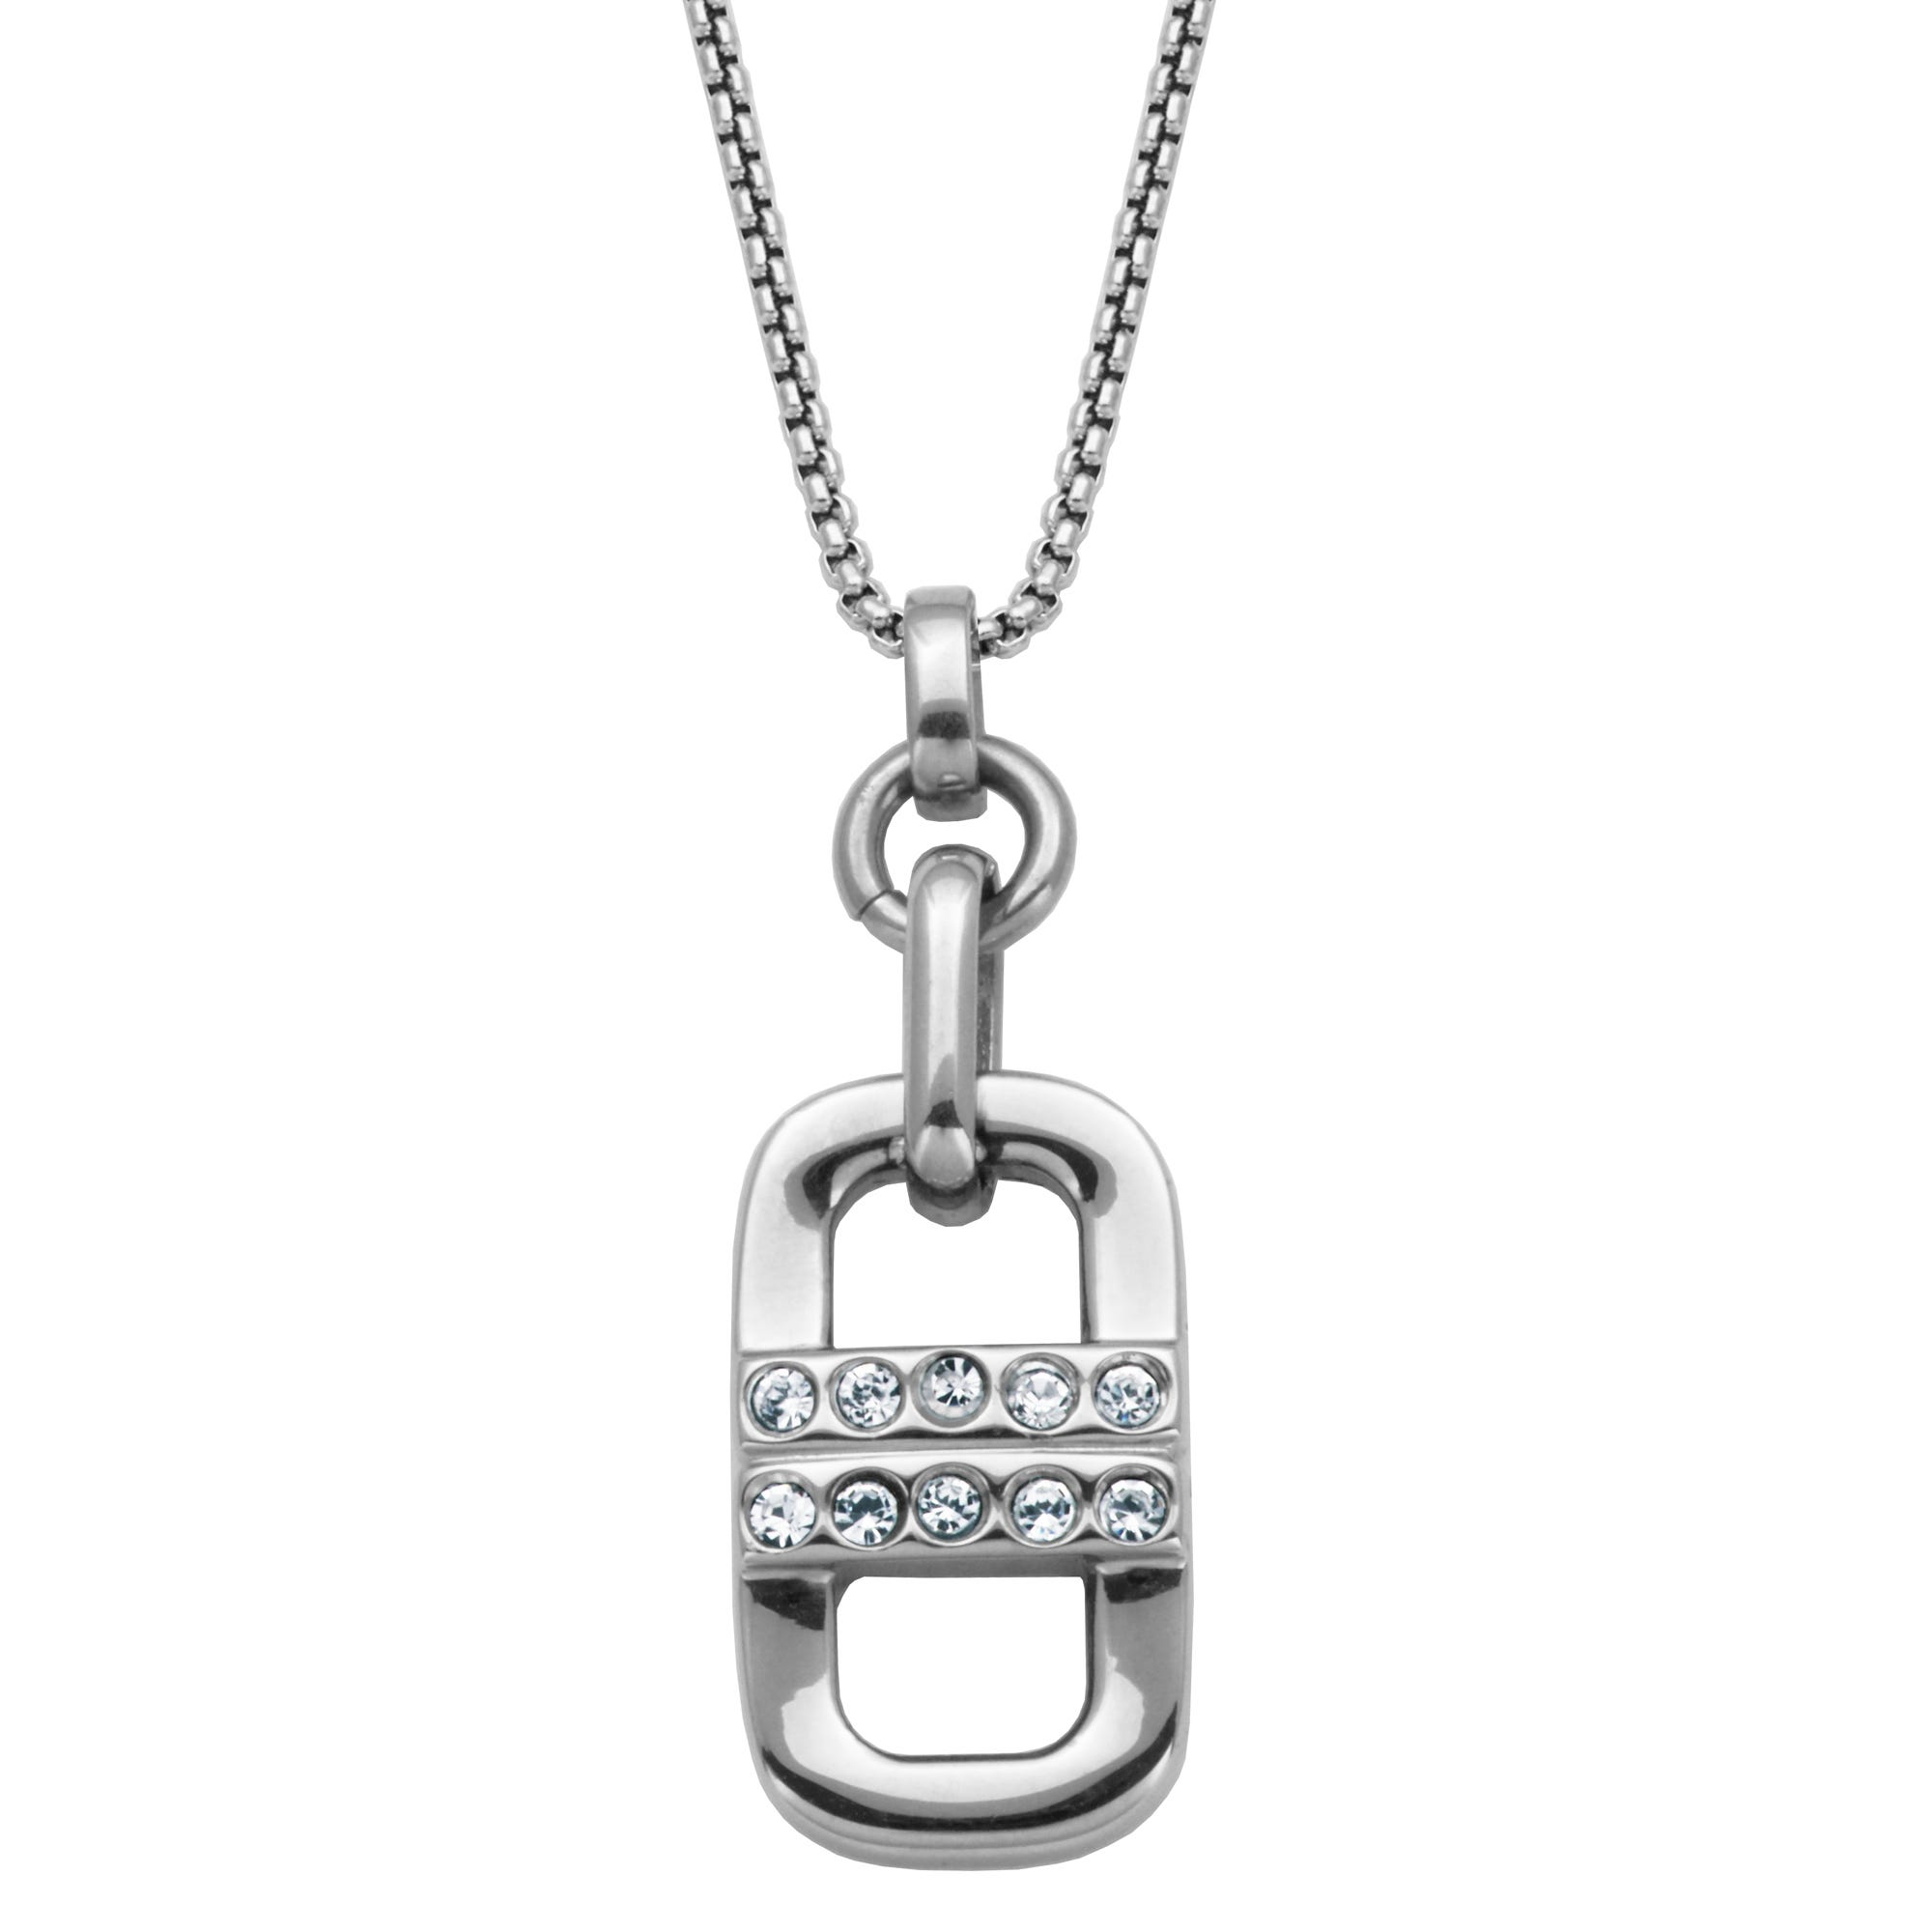 Stainless Steel Double Marine Link Fashion Necklace with Crystals in Stainless Steel